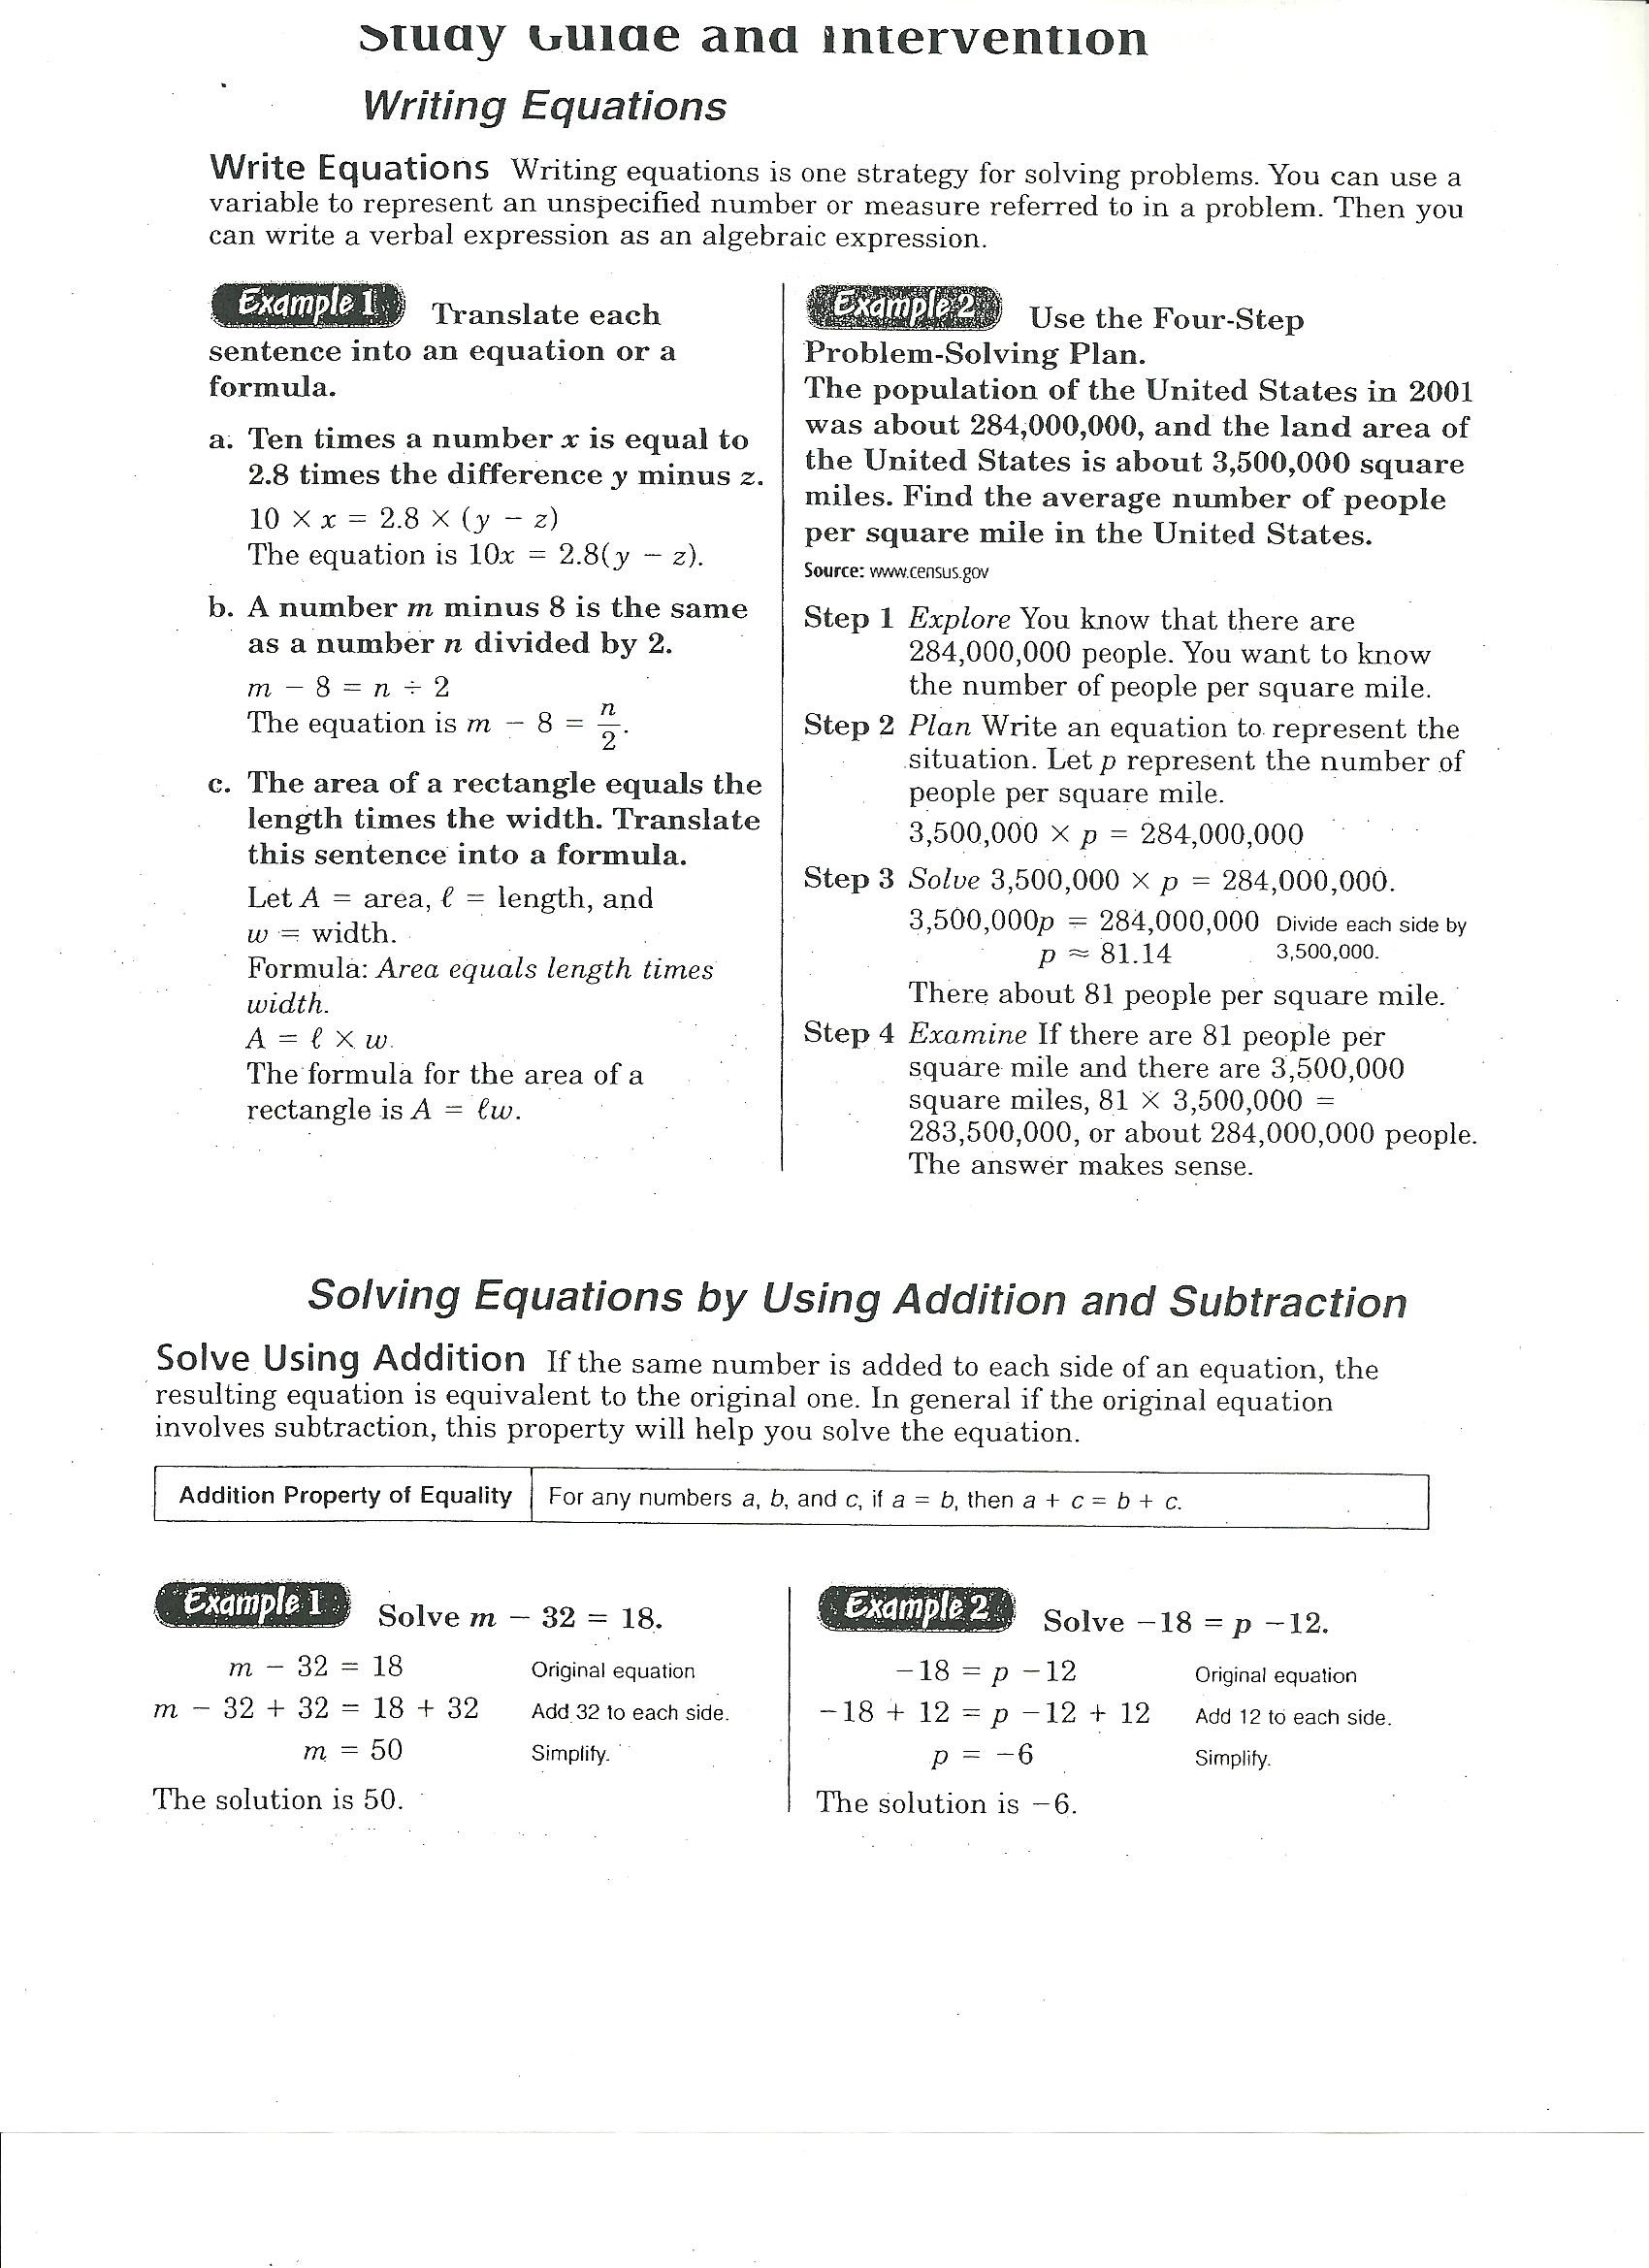 linear equation study guide Cliffsnotes study guides are written by real teachers and professors, so no matter what you're studying, cliffsnotes can ease your homework headaches and help you.